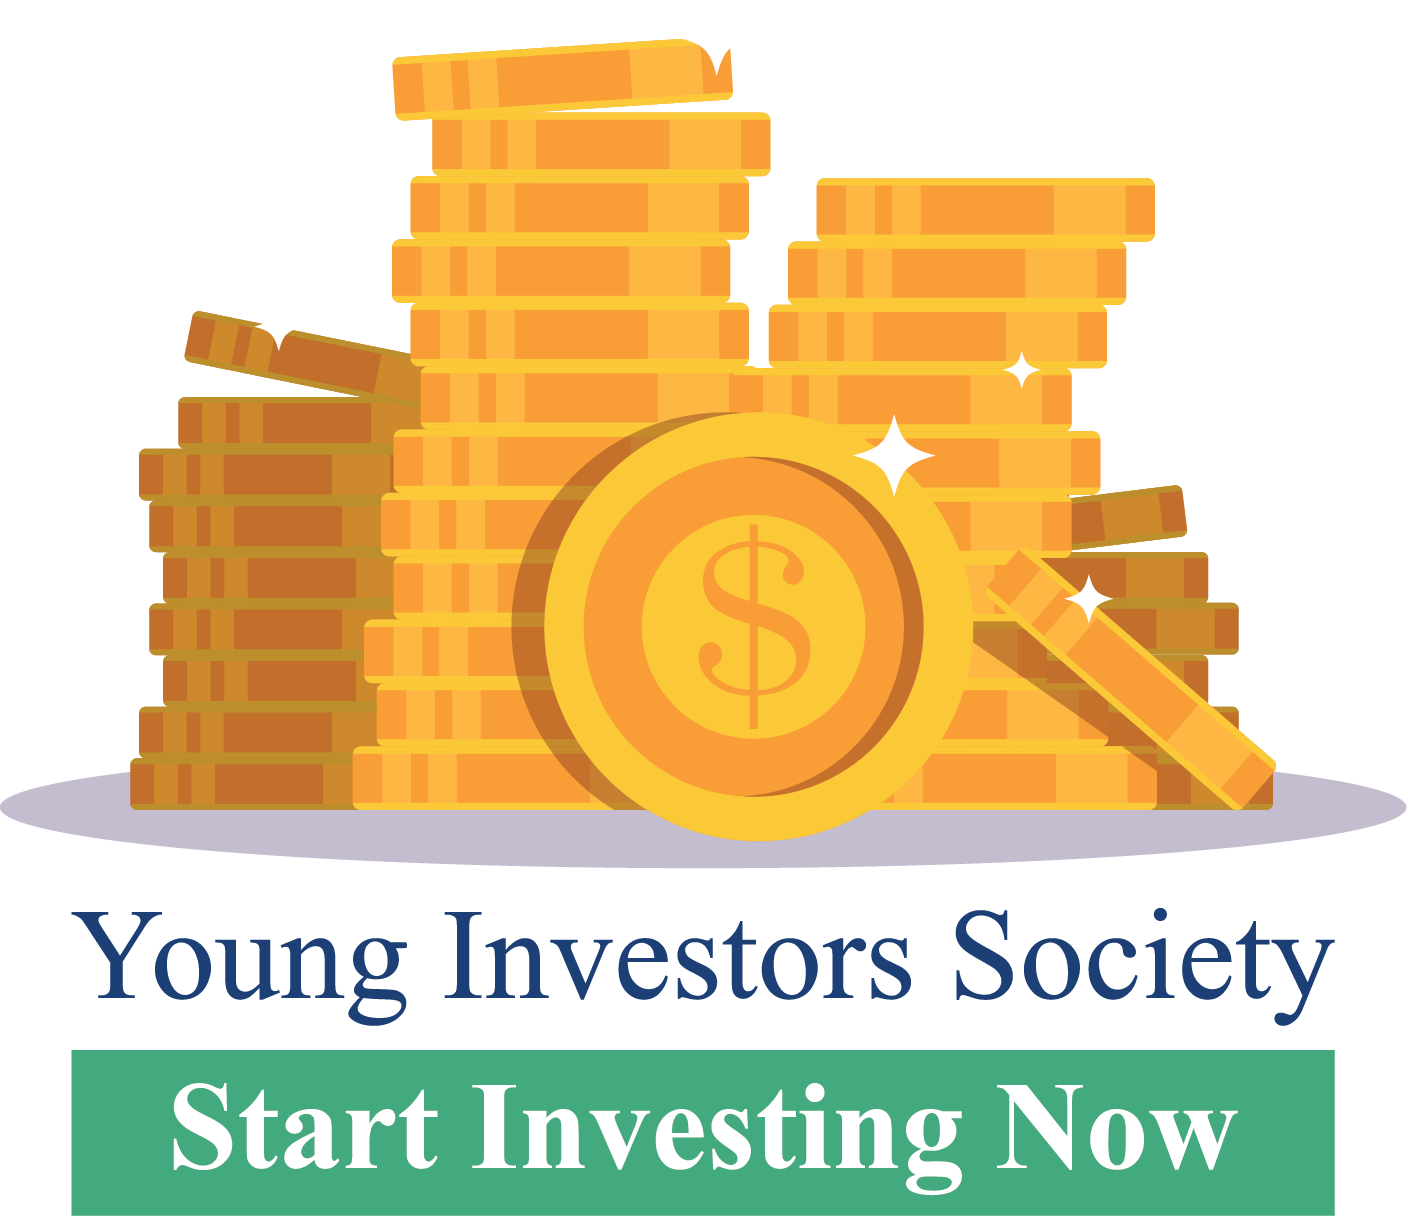 Enter the Start Investing NOW Giveaway!